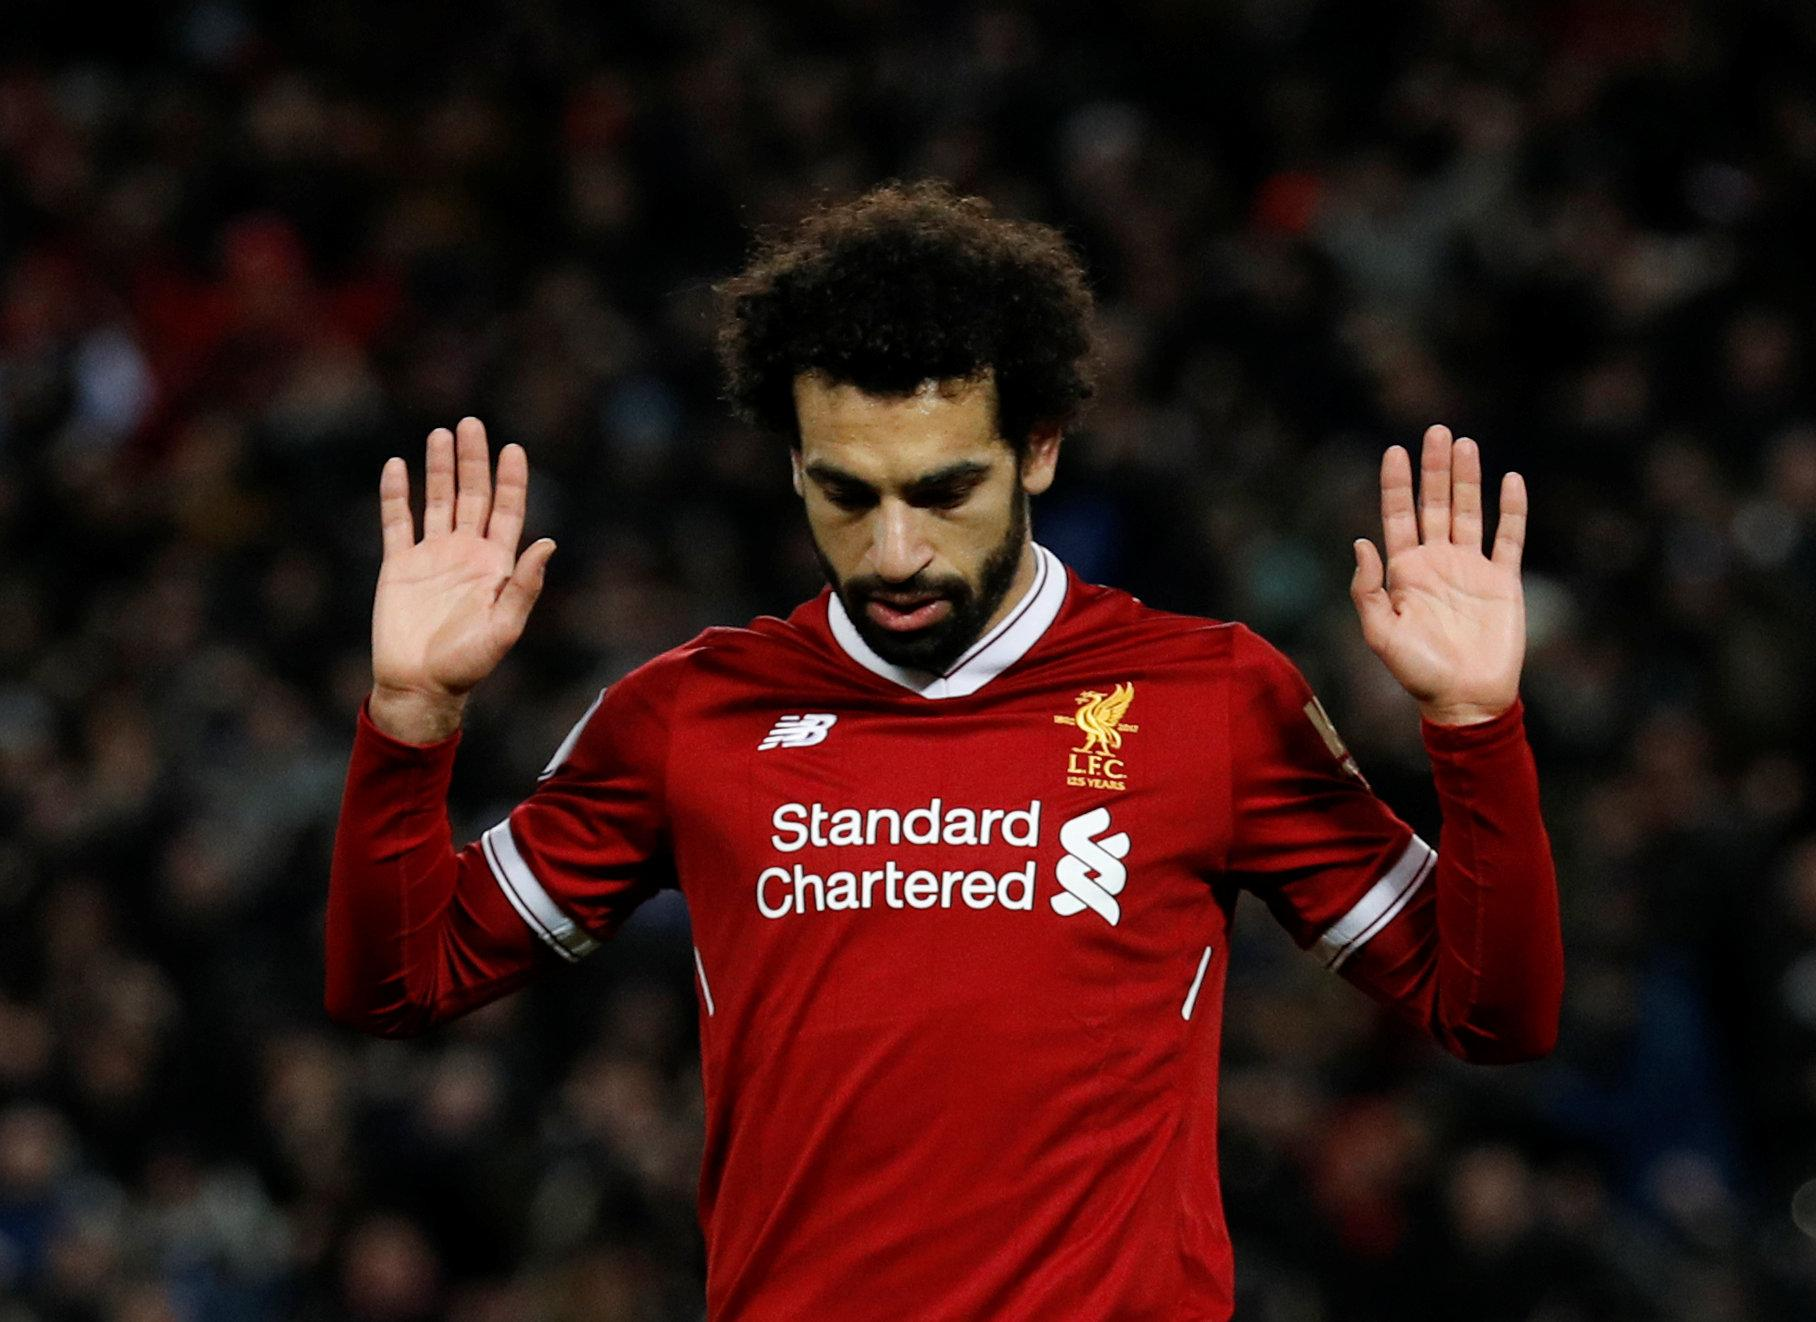 Salah paid his respect after scoring against Chelsea